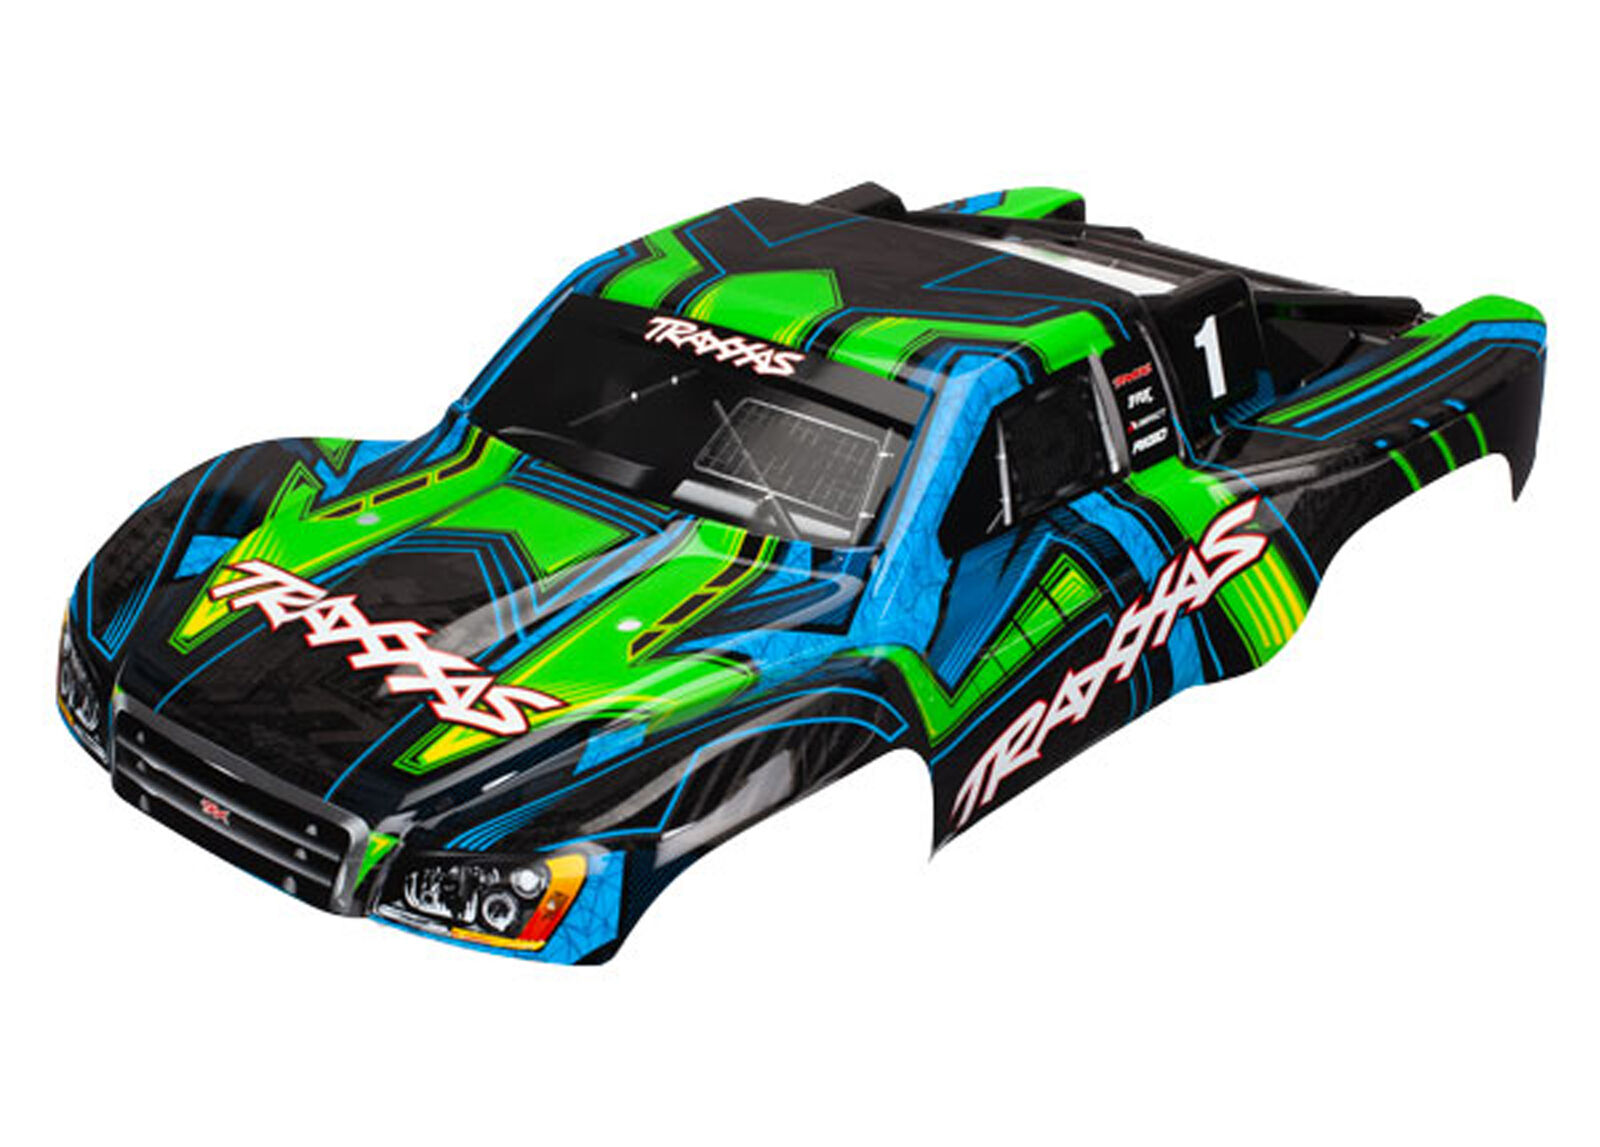 Traxxas 6844X-Slash 4x4 Ultimate Body, verde Y Azul